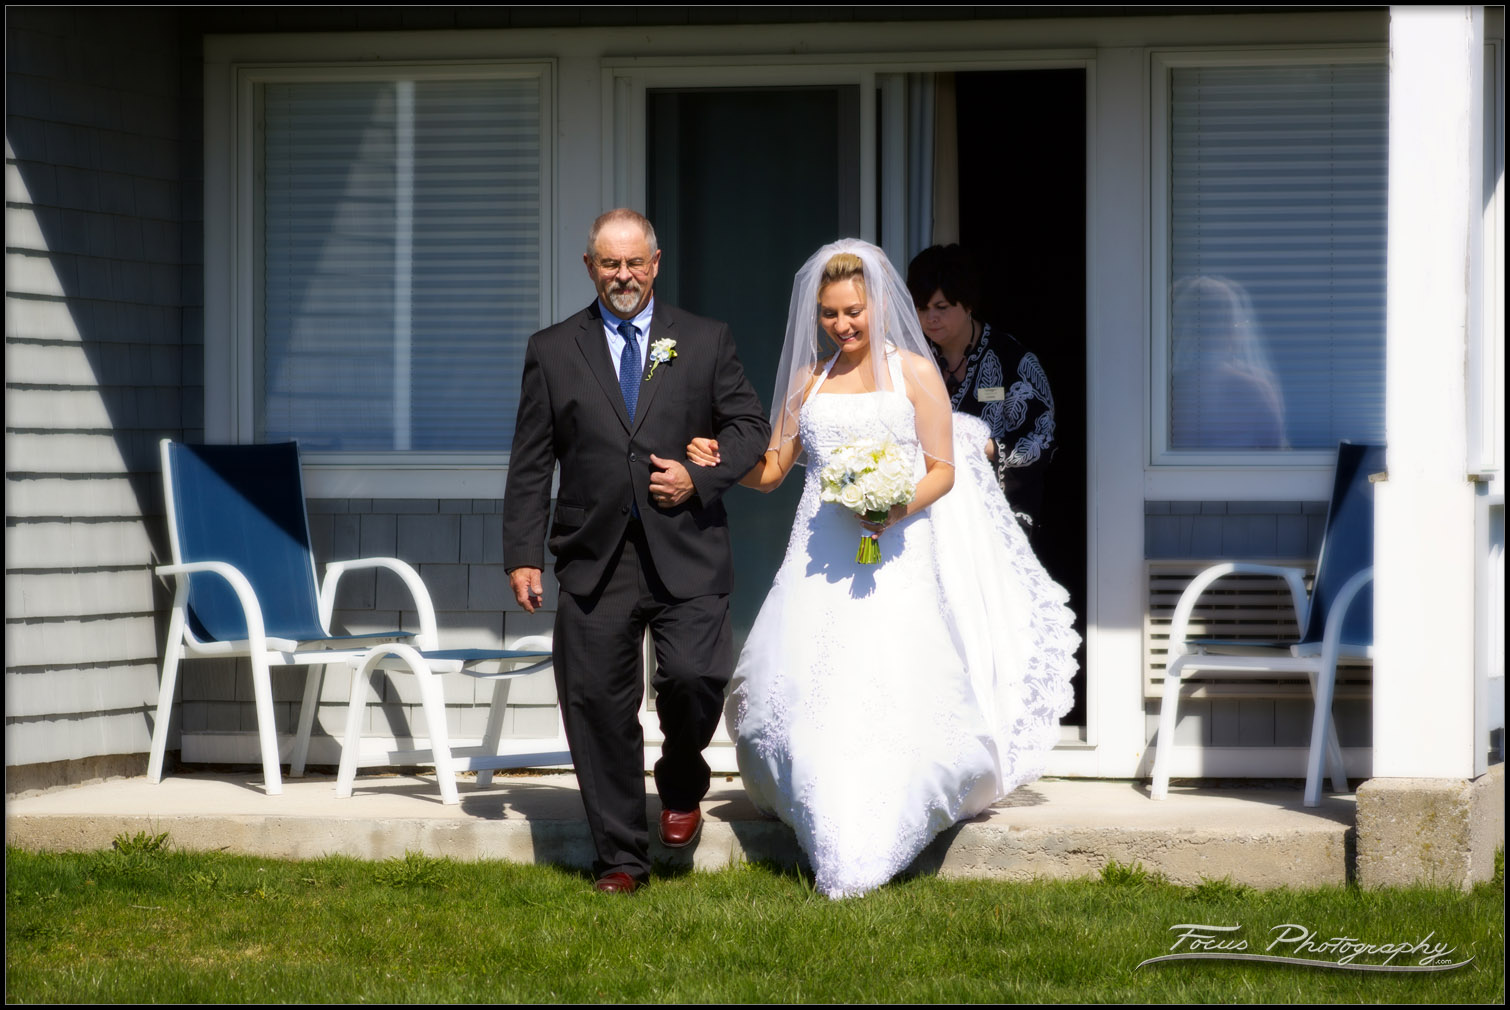 bride walks down aisle in ceremony during Maine wedding - photography by Focus